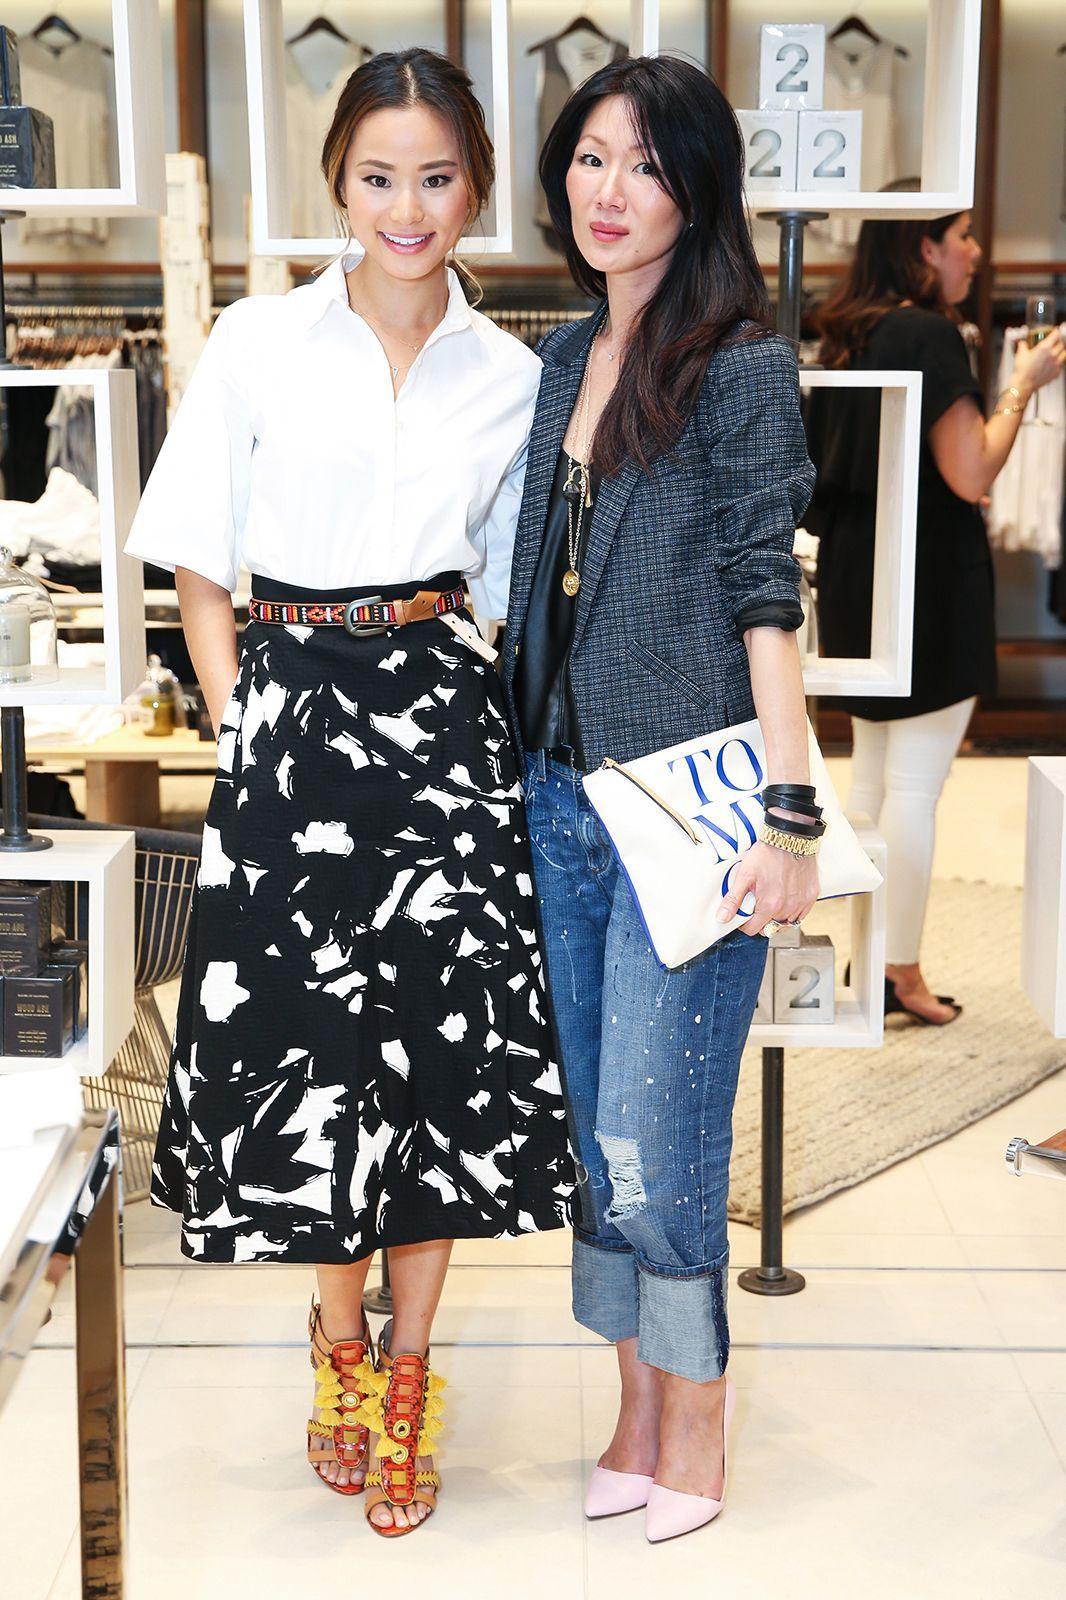 Why The New Banana Republic Deserves Your Attention #refinery29  http://www.refinery29.com/banana-republic-marissa-webb-spring-2015-collection-event#slide-2  Chung (left) and Webb show off the summer collection.